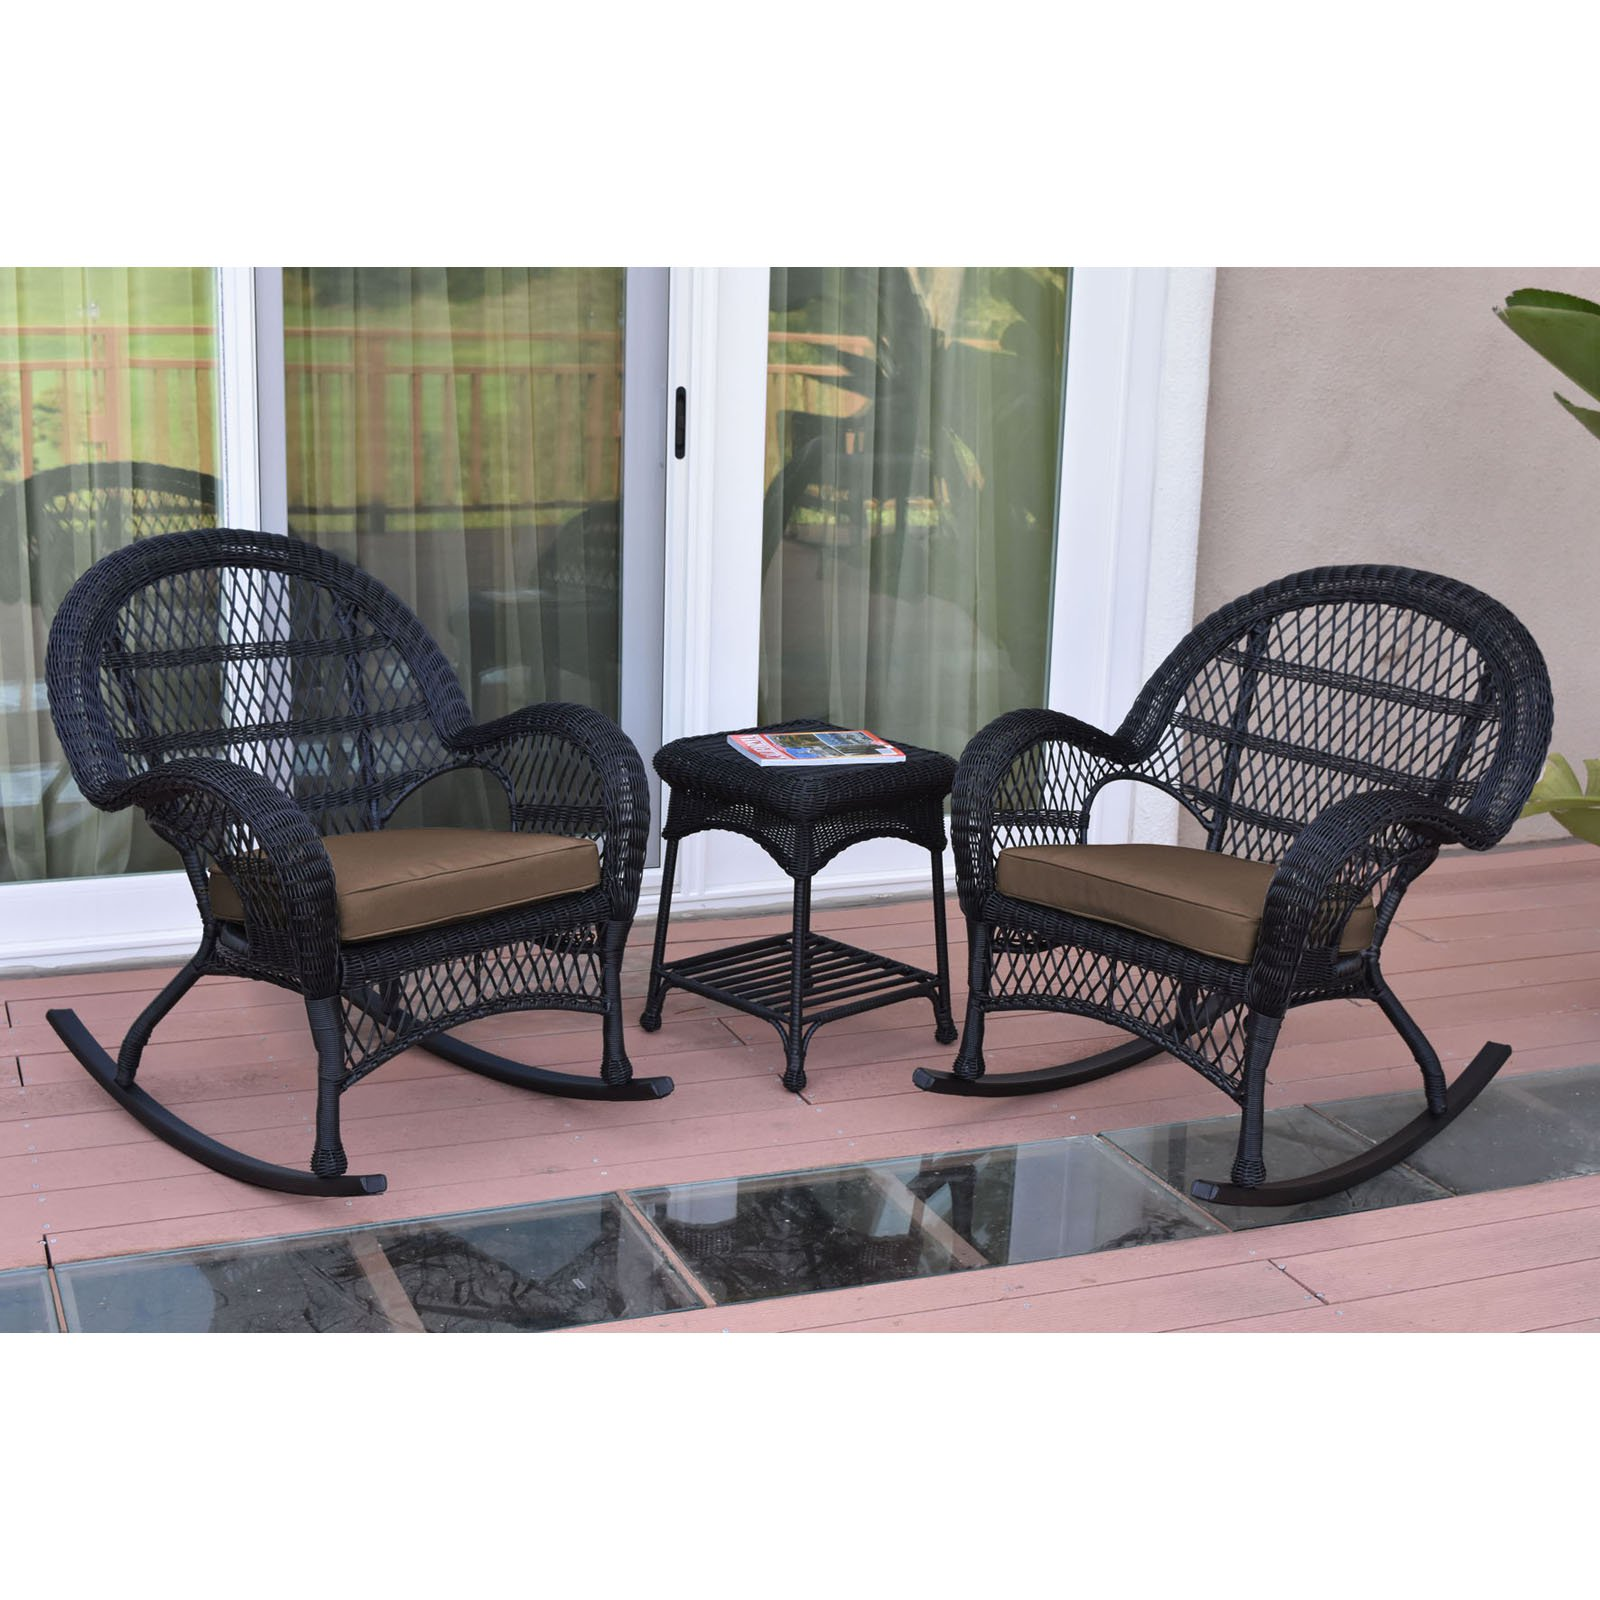 Jeco Santa Maria 3 Piece Wicker Rocker Chat Set with Optional Cushion